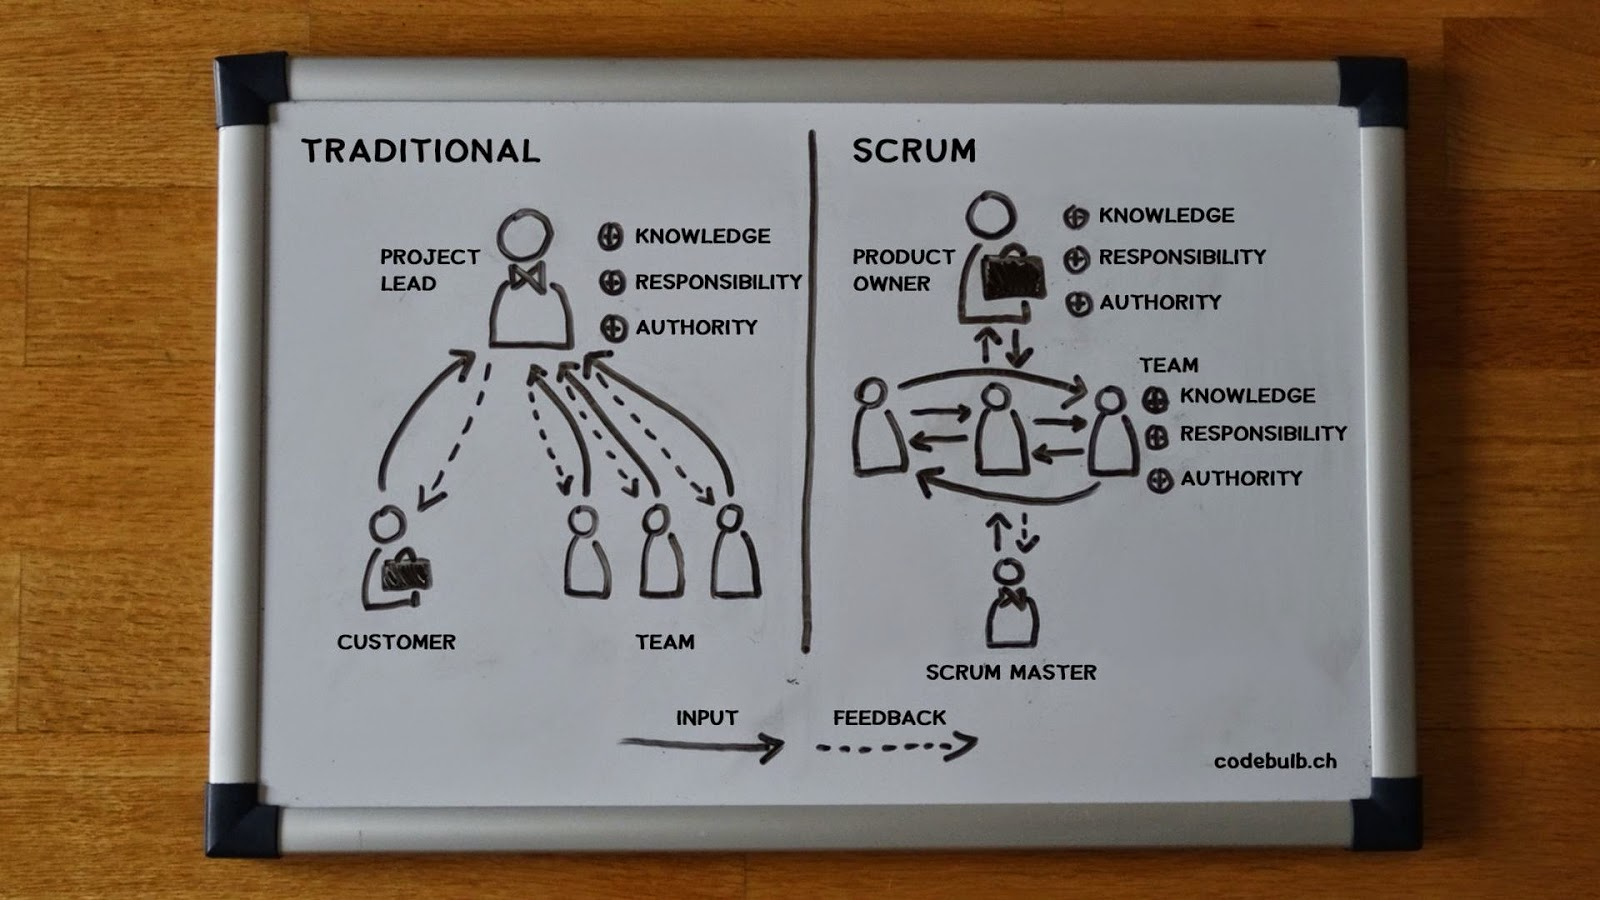 Tranditional vs. Scrum approach to team organization in a whiteboard sketch